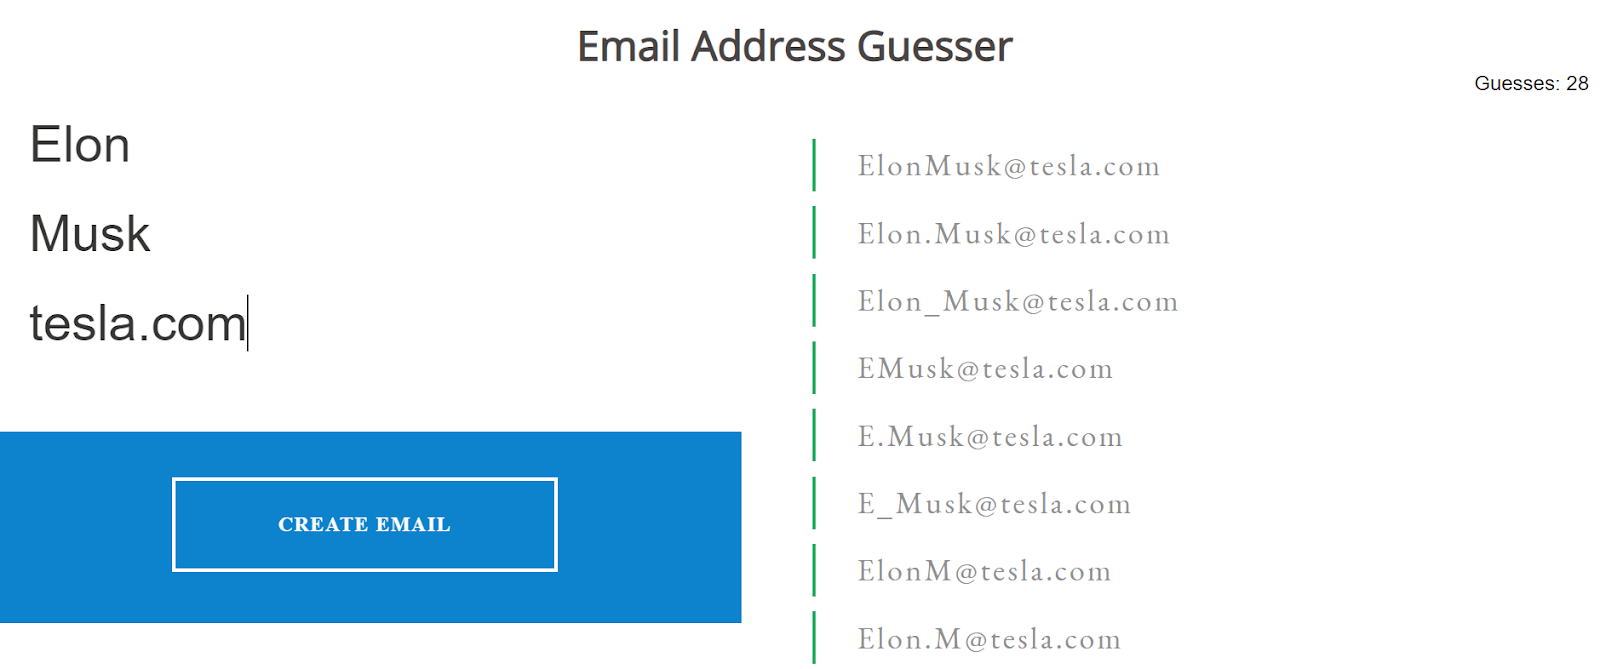 How To Find Someone's Email Address 9